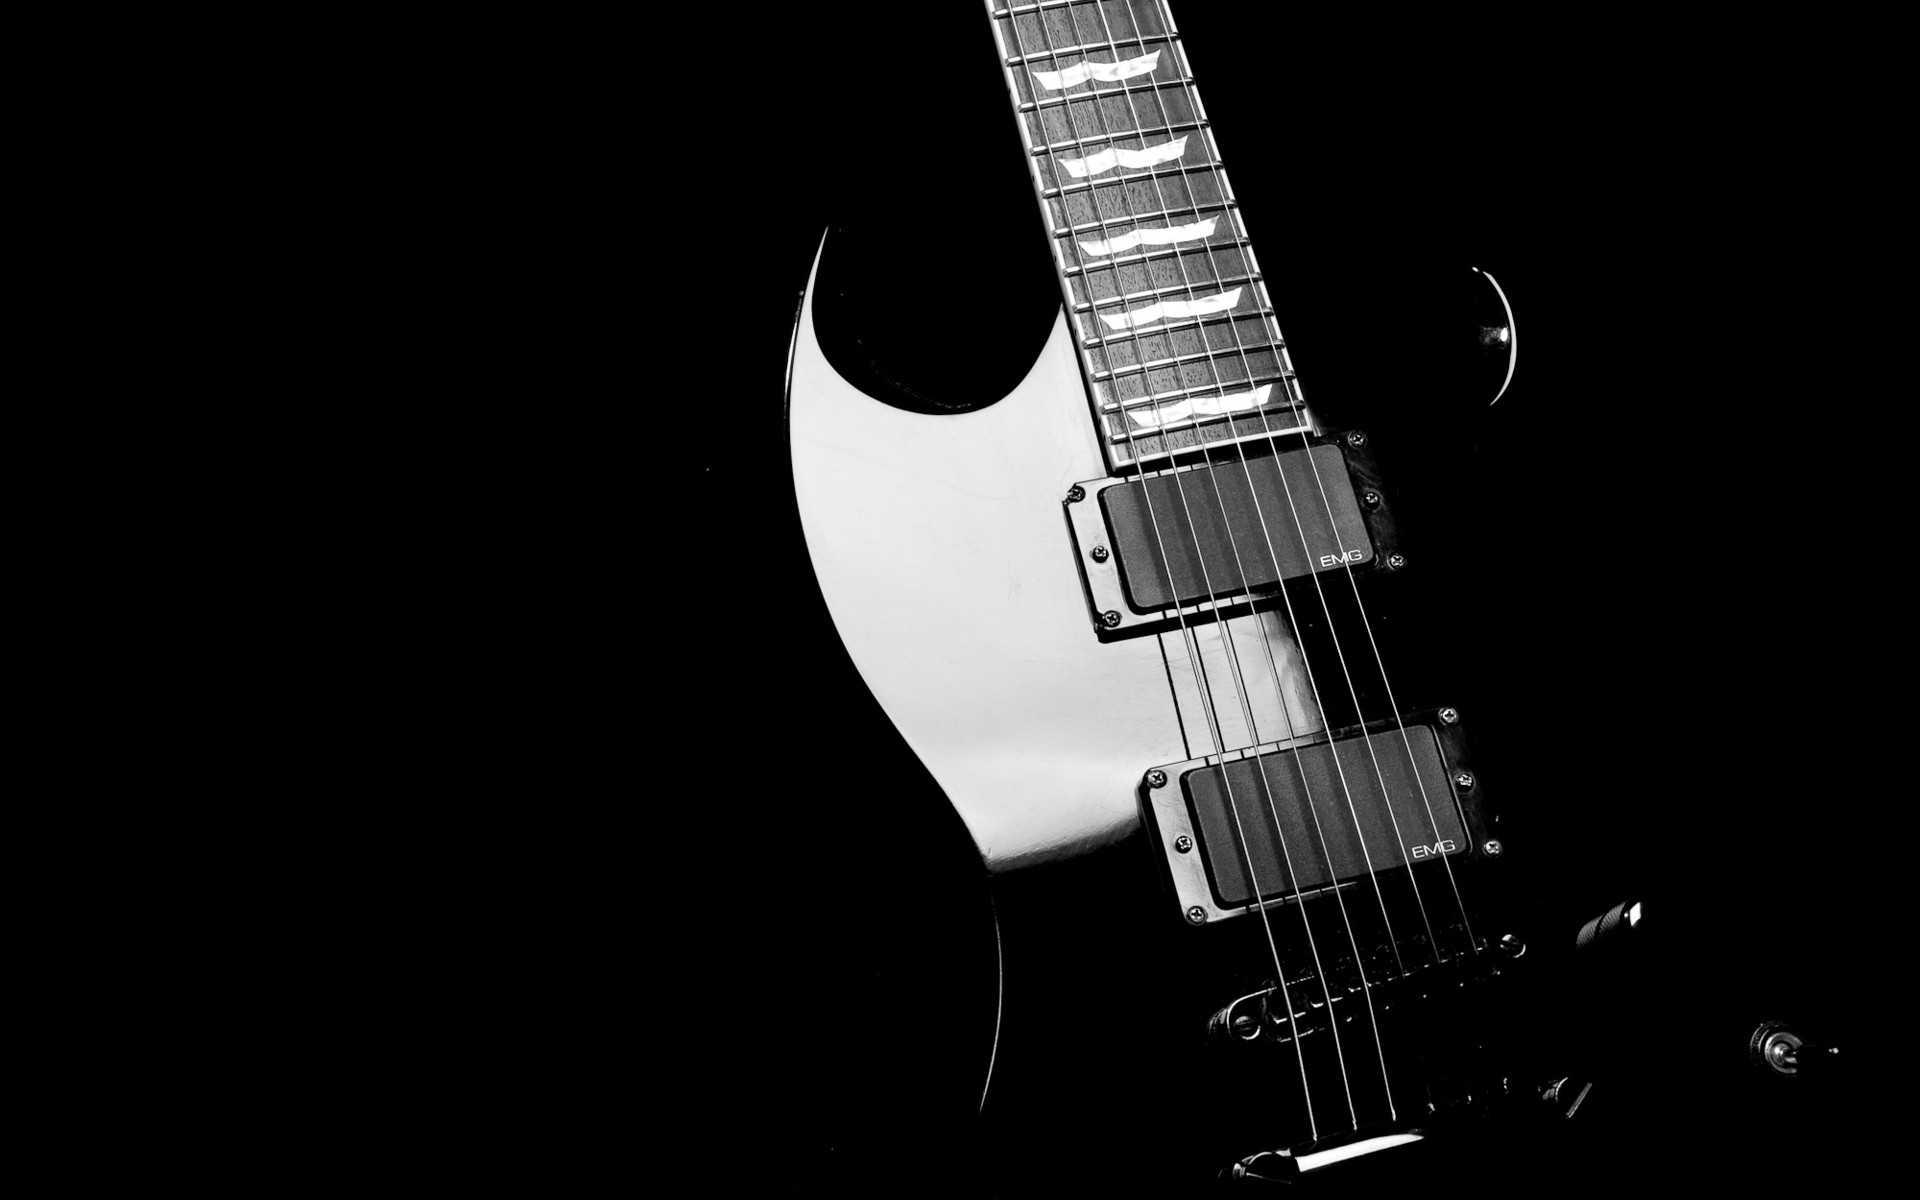 1920x1200 Guitar Wide Wallpapers